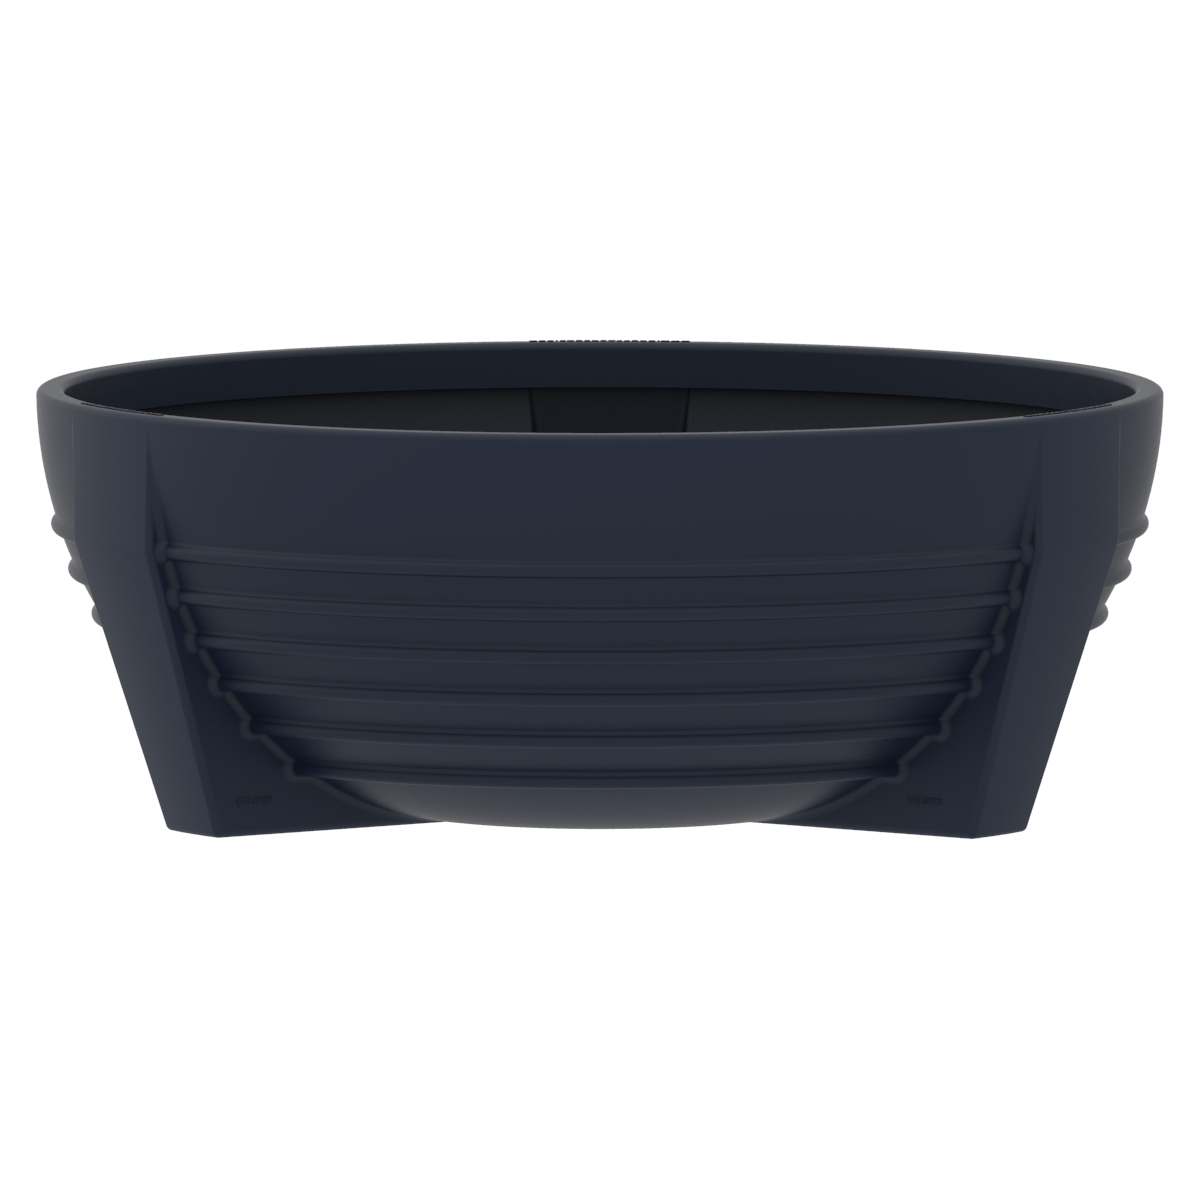 Sferic or circular flower box of Polypropylene futura P-300